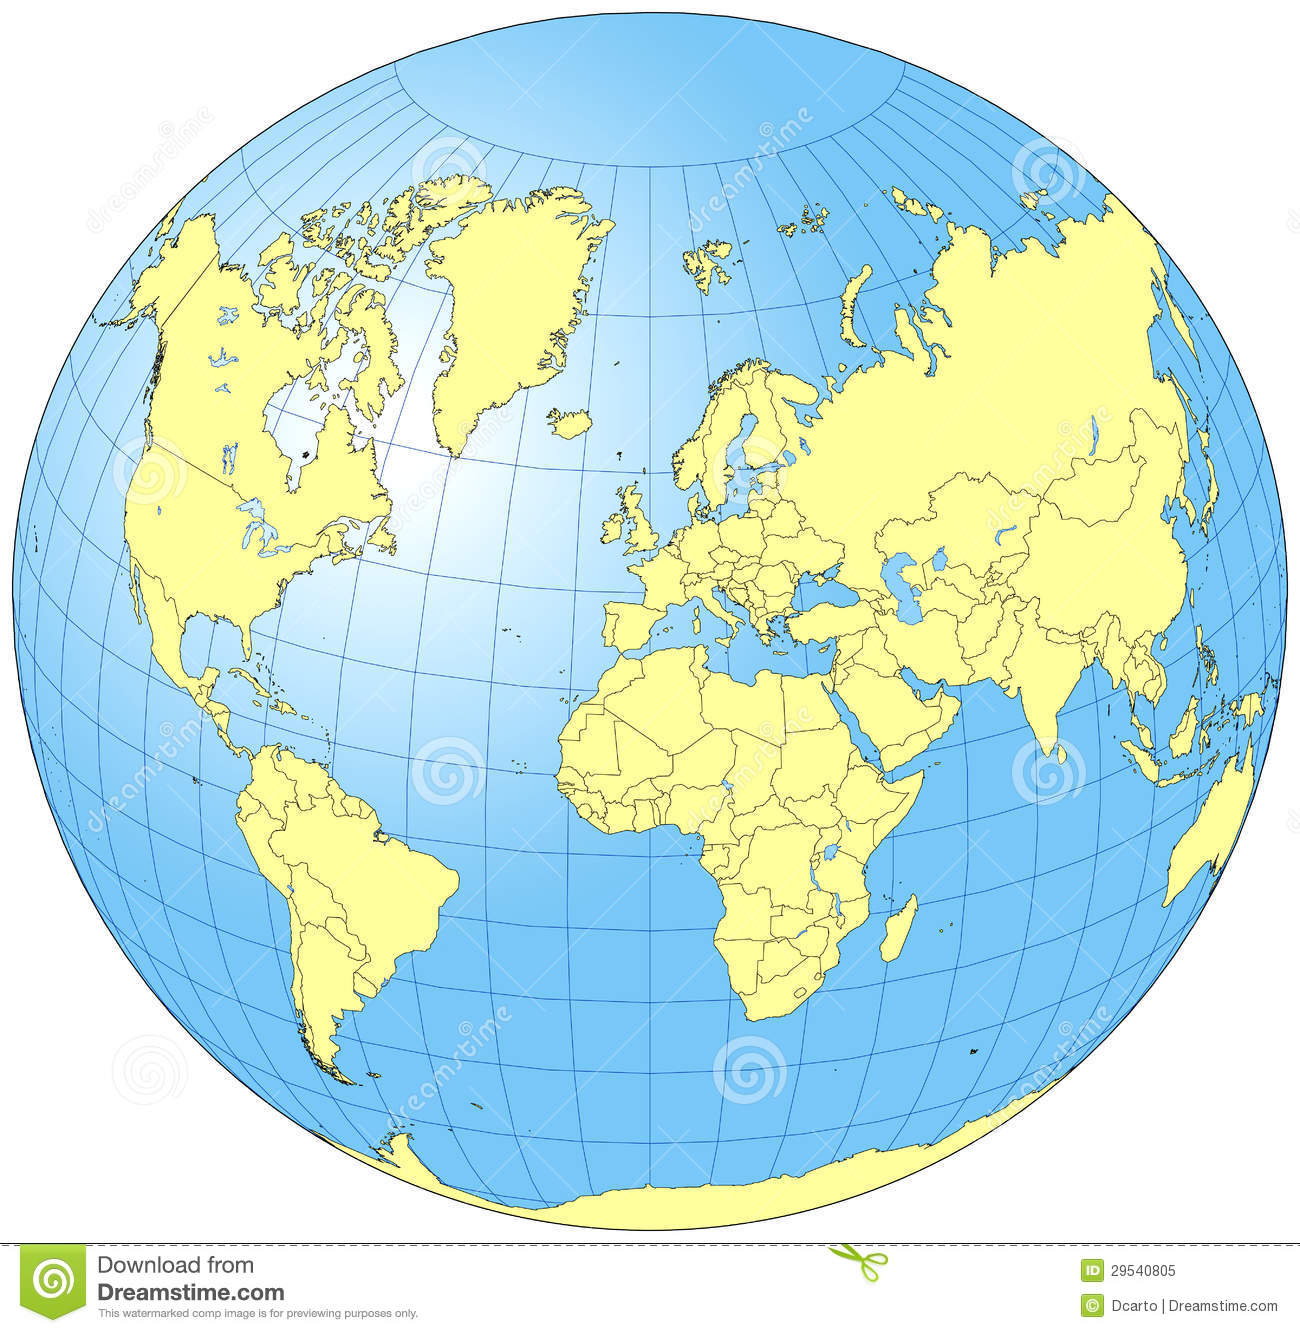 Map Of The Whole World Labeled.Map Of The Whole World Labeled Twitterleesclub